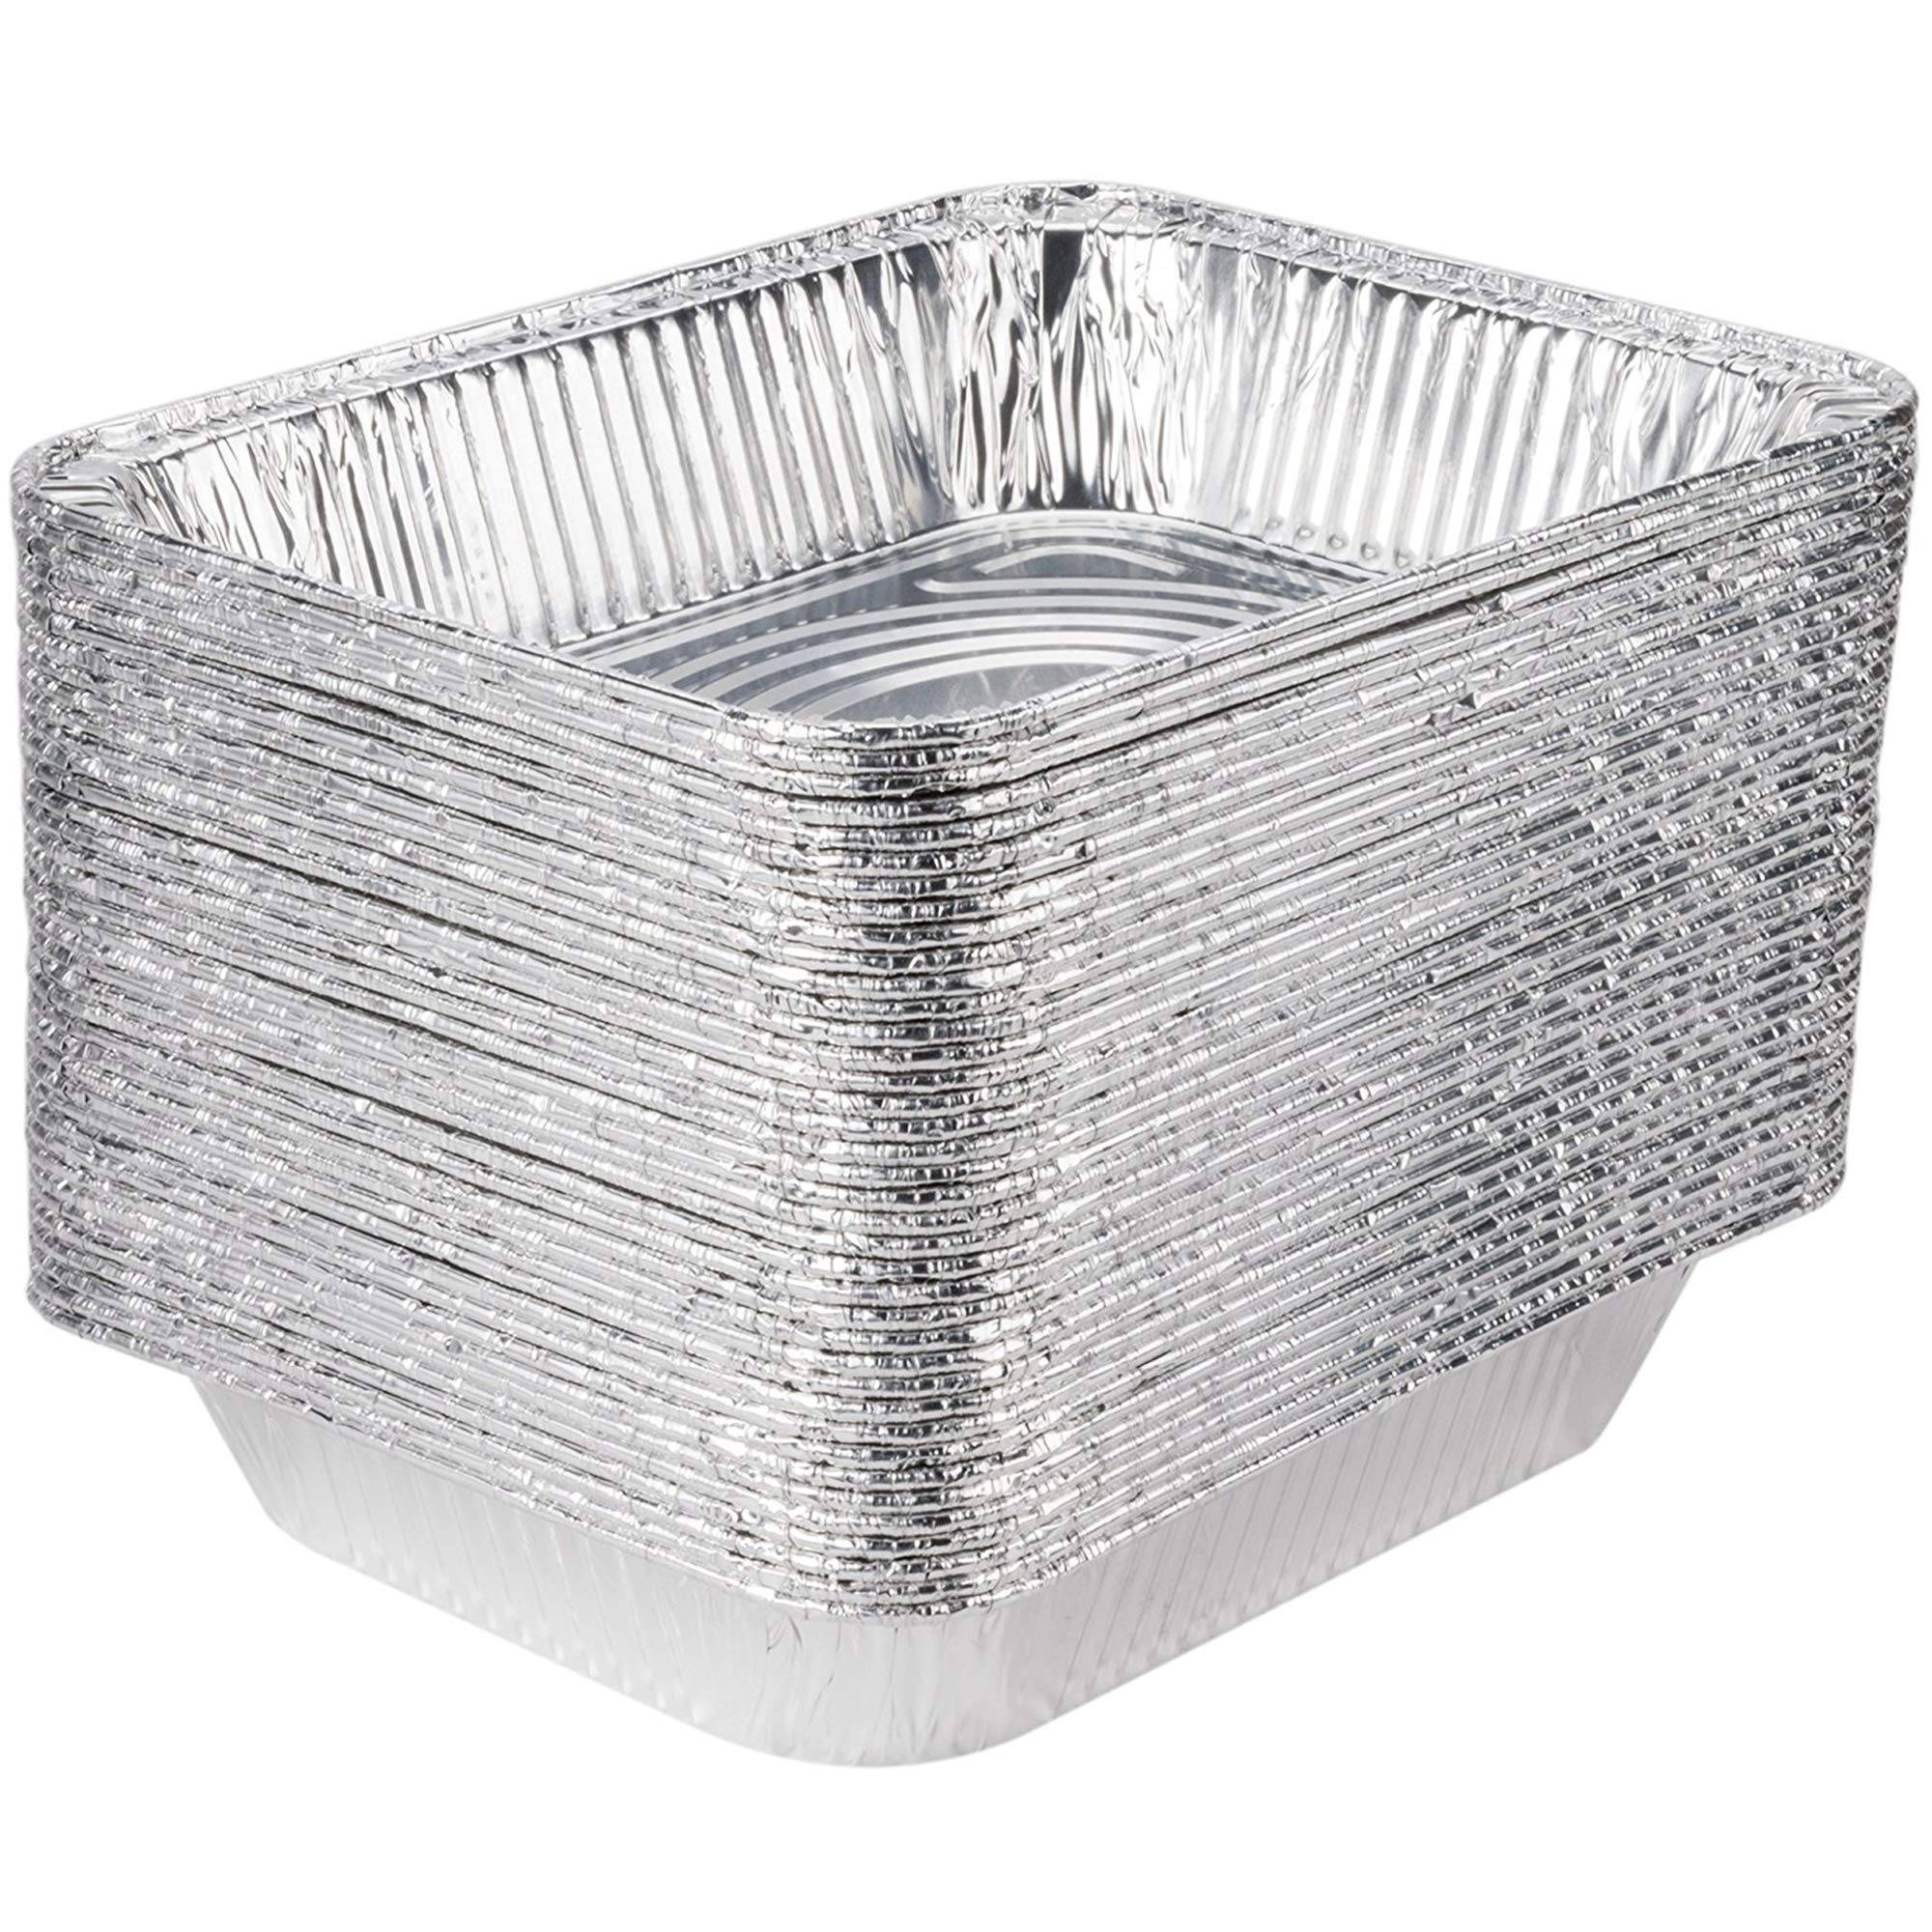 [30 Pack] 9 x 13 Aluminum Foil Pans Half Size Deep Steam Table Pans